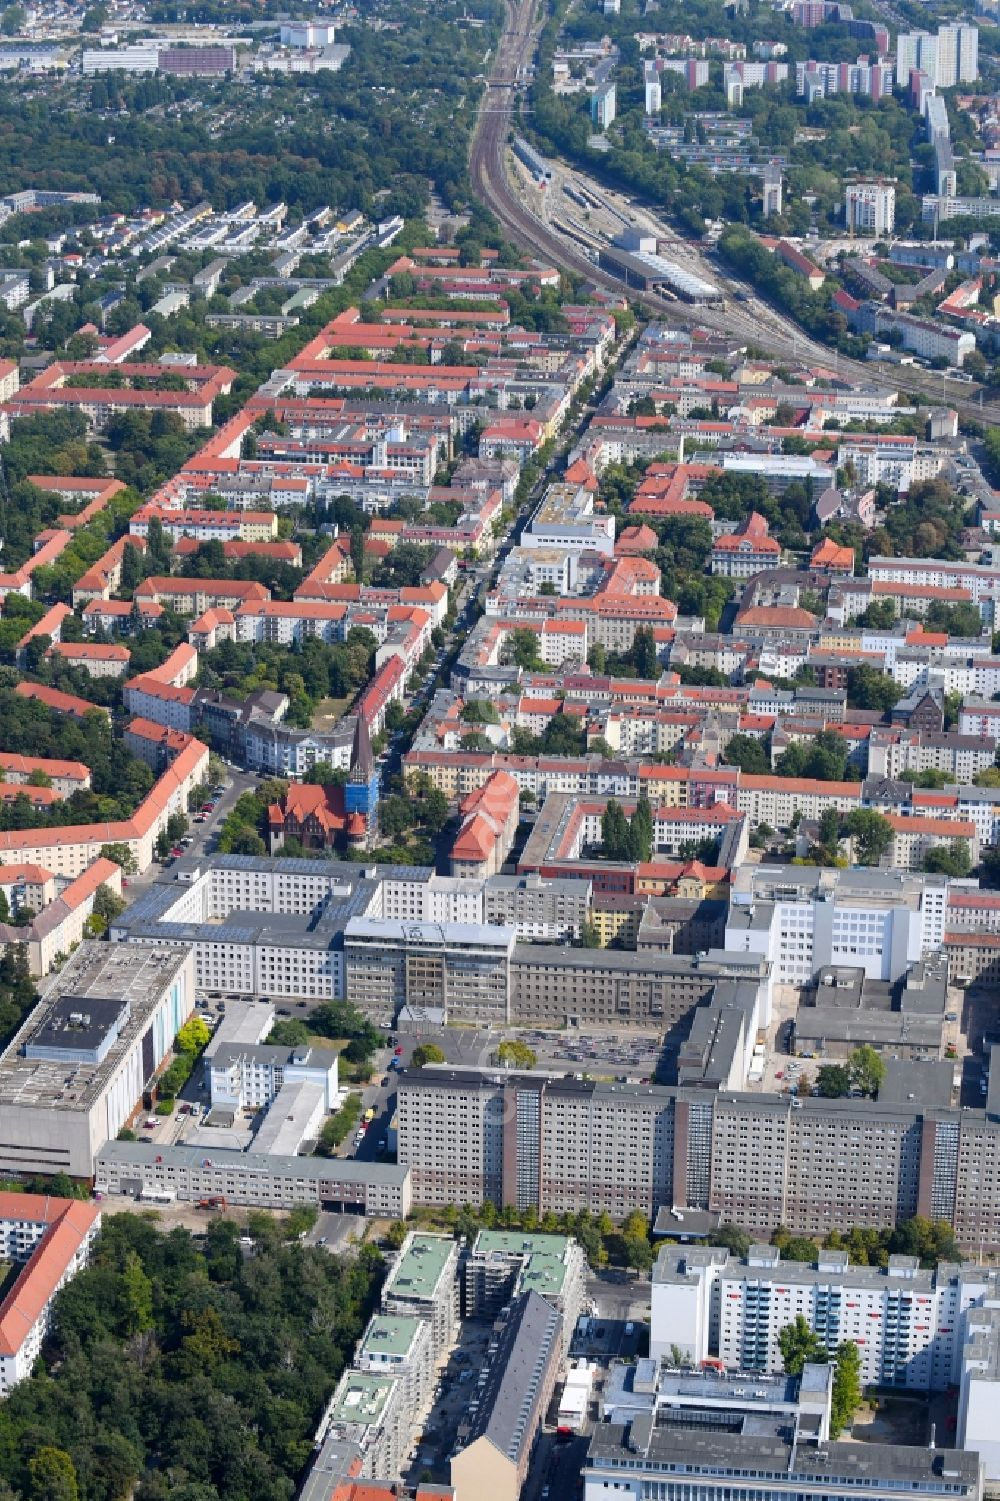 Aerial image Berlin - Building complex of the Memorial of the former Stasi Ministry for State Security of the GDR in the Ruschestrasse in Berlin Lichtenberg